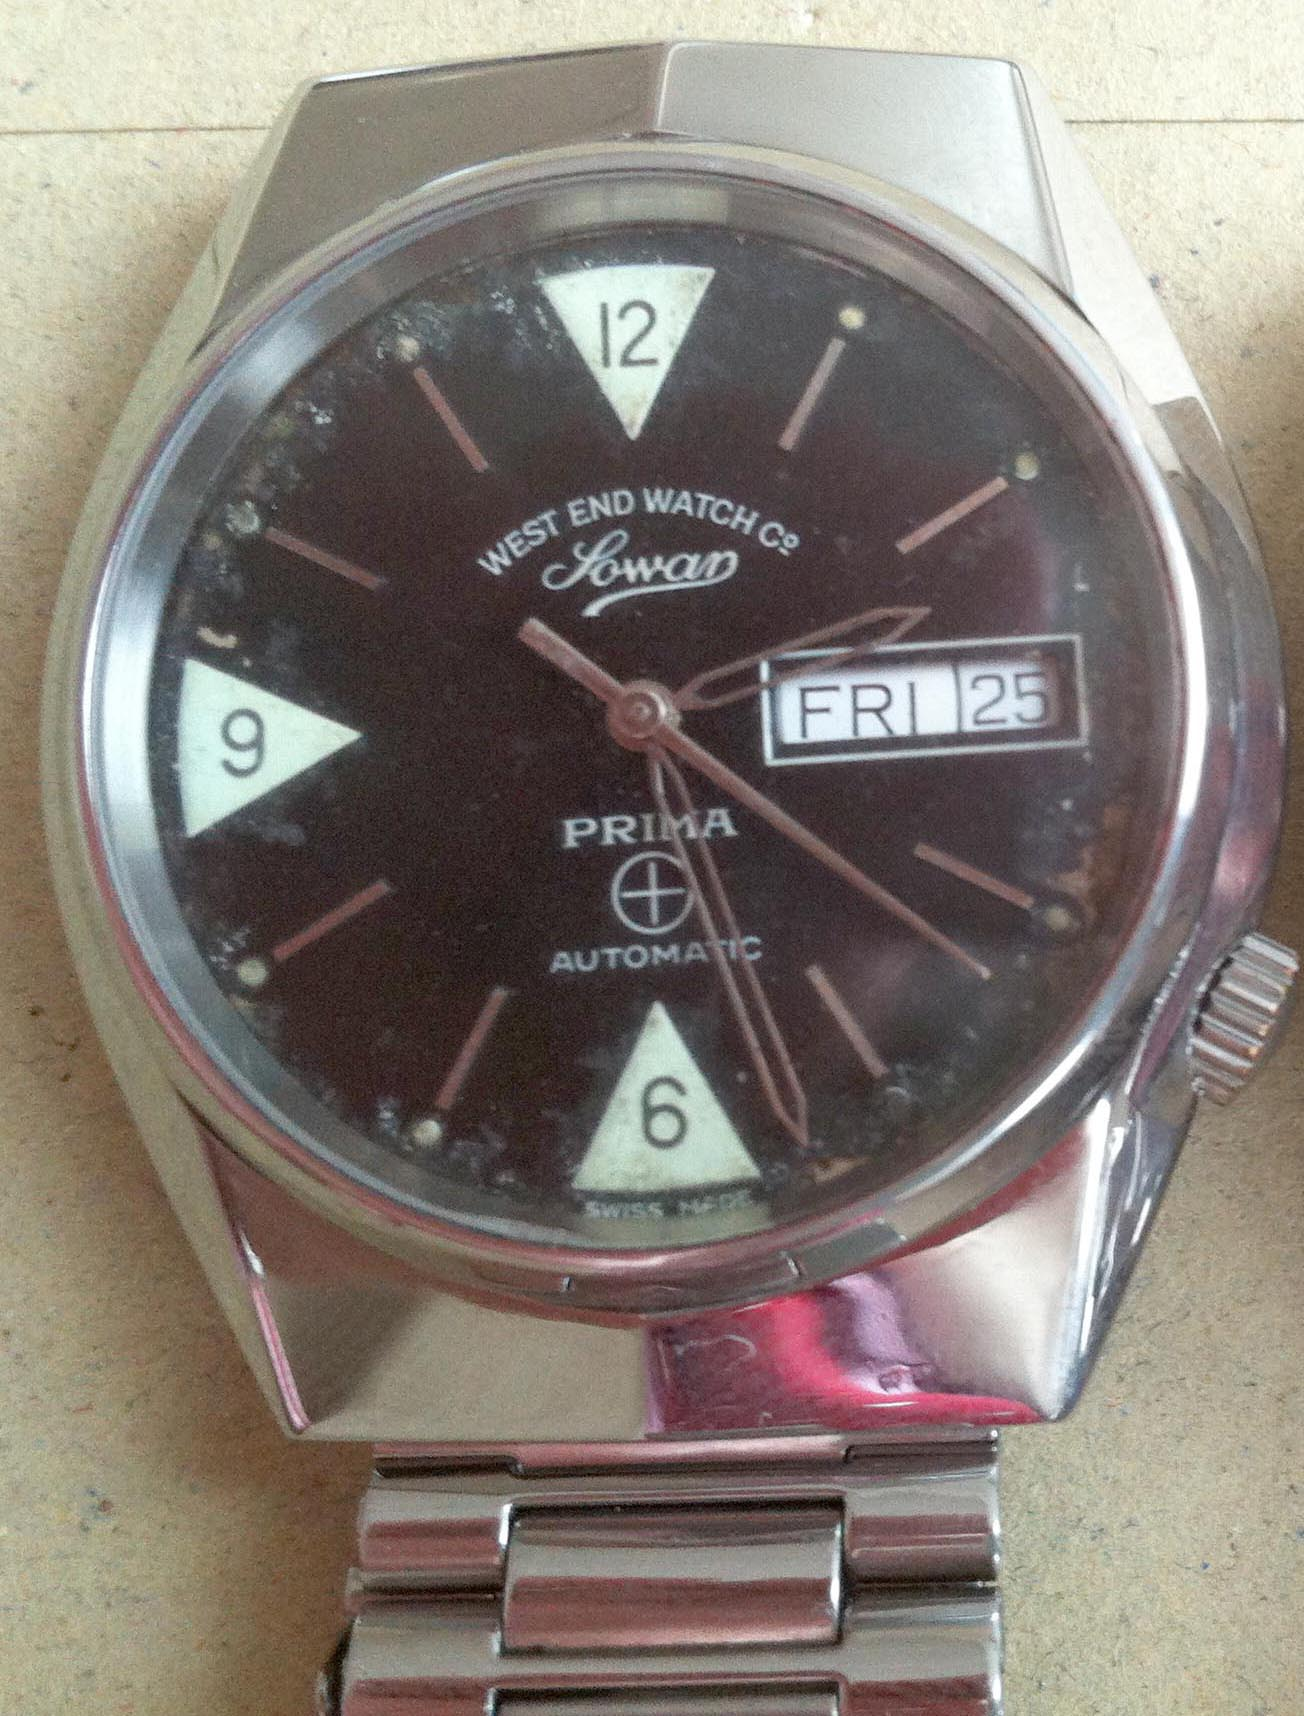 West End Watch Company Sowar Prima Automatic day date at 3 black dial ...